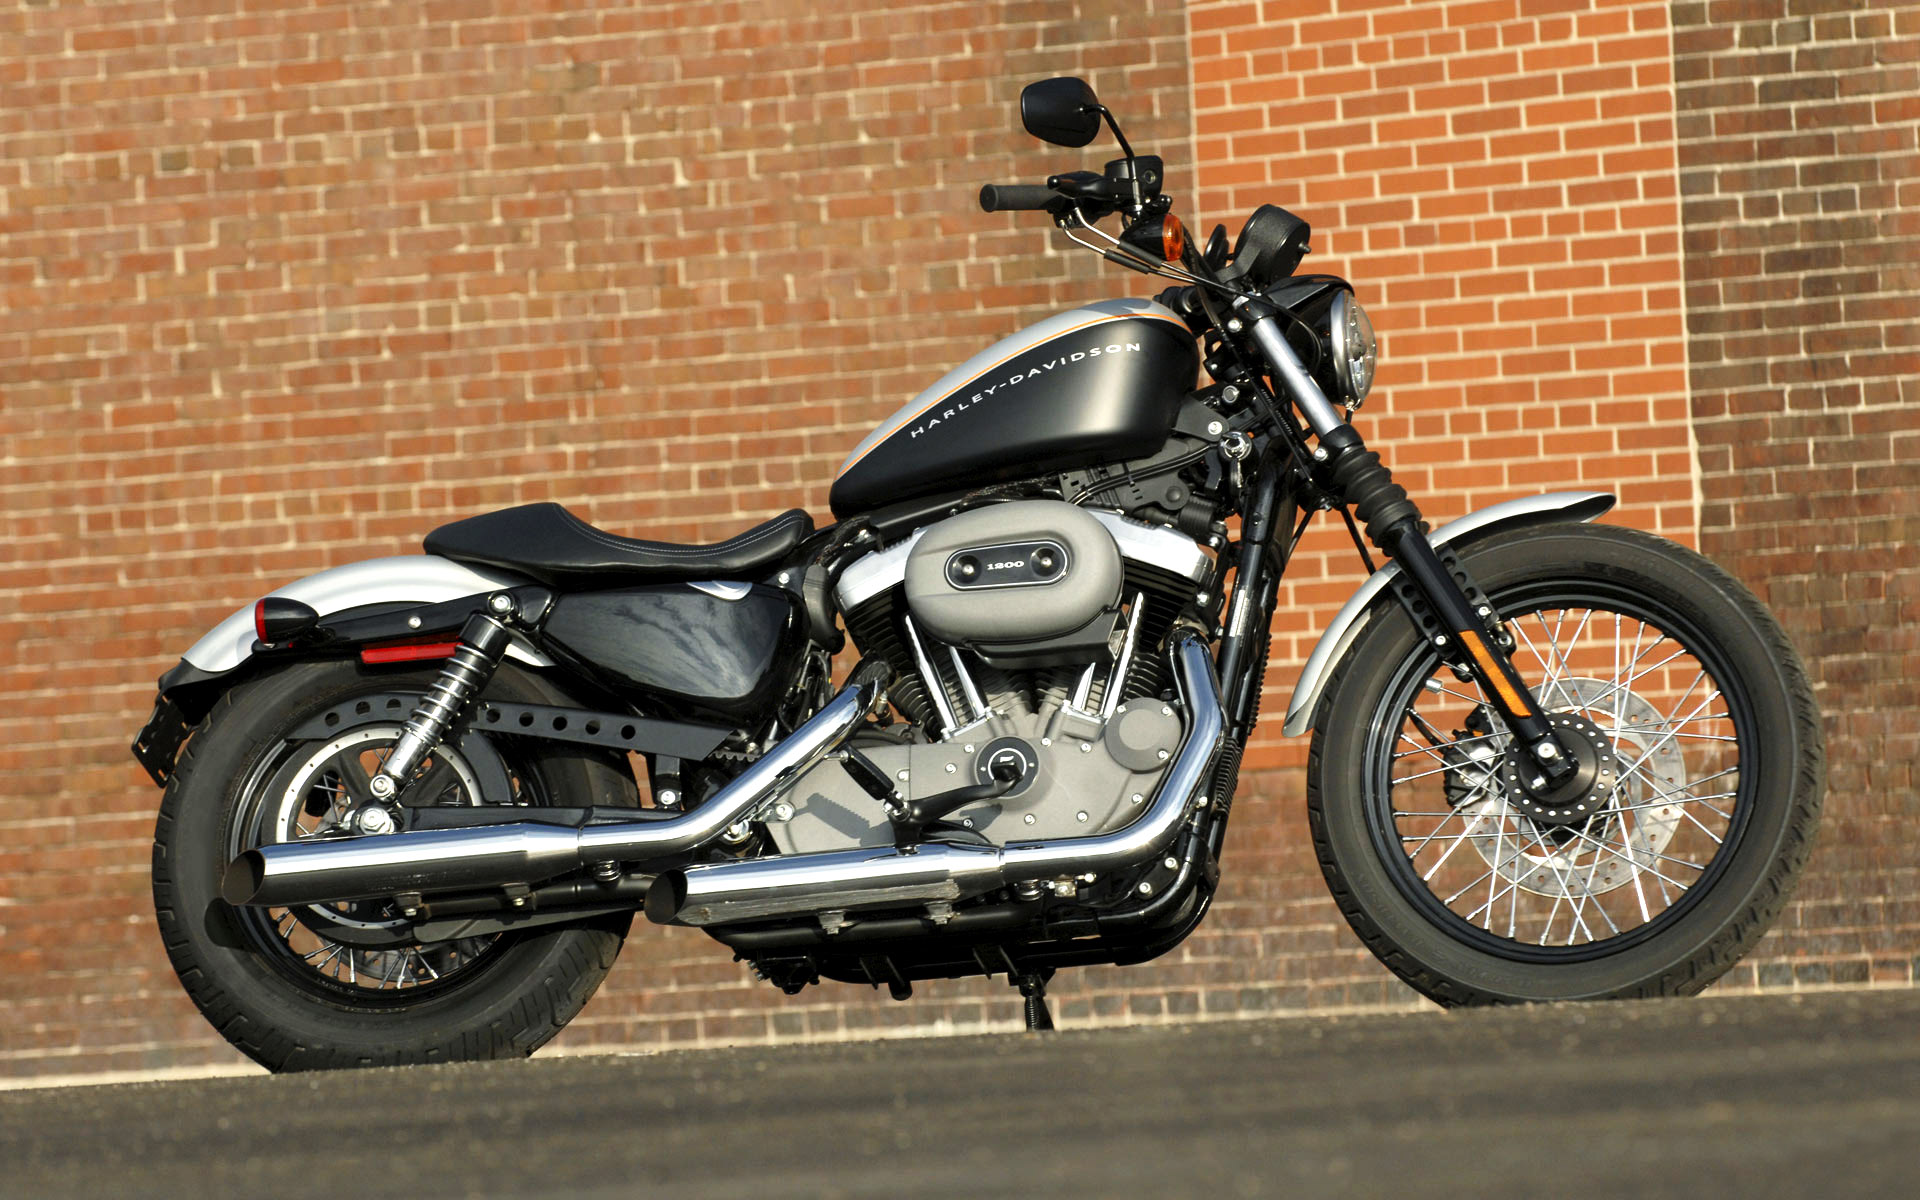 Harley-Davidson XLH Sportster 1200 (reduced effect) 1989 #6